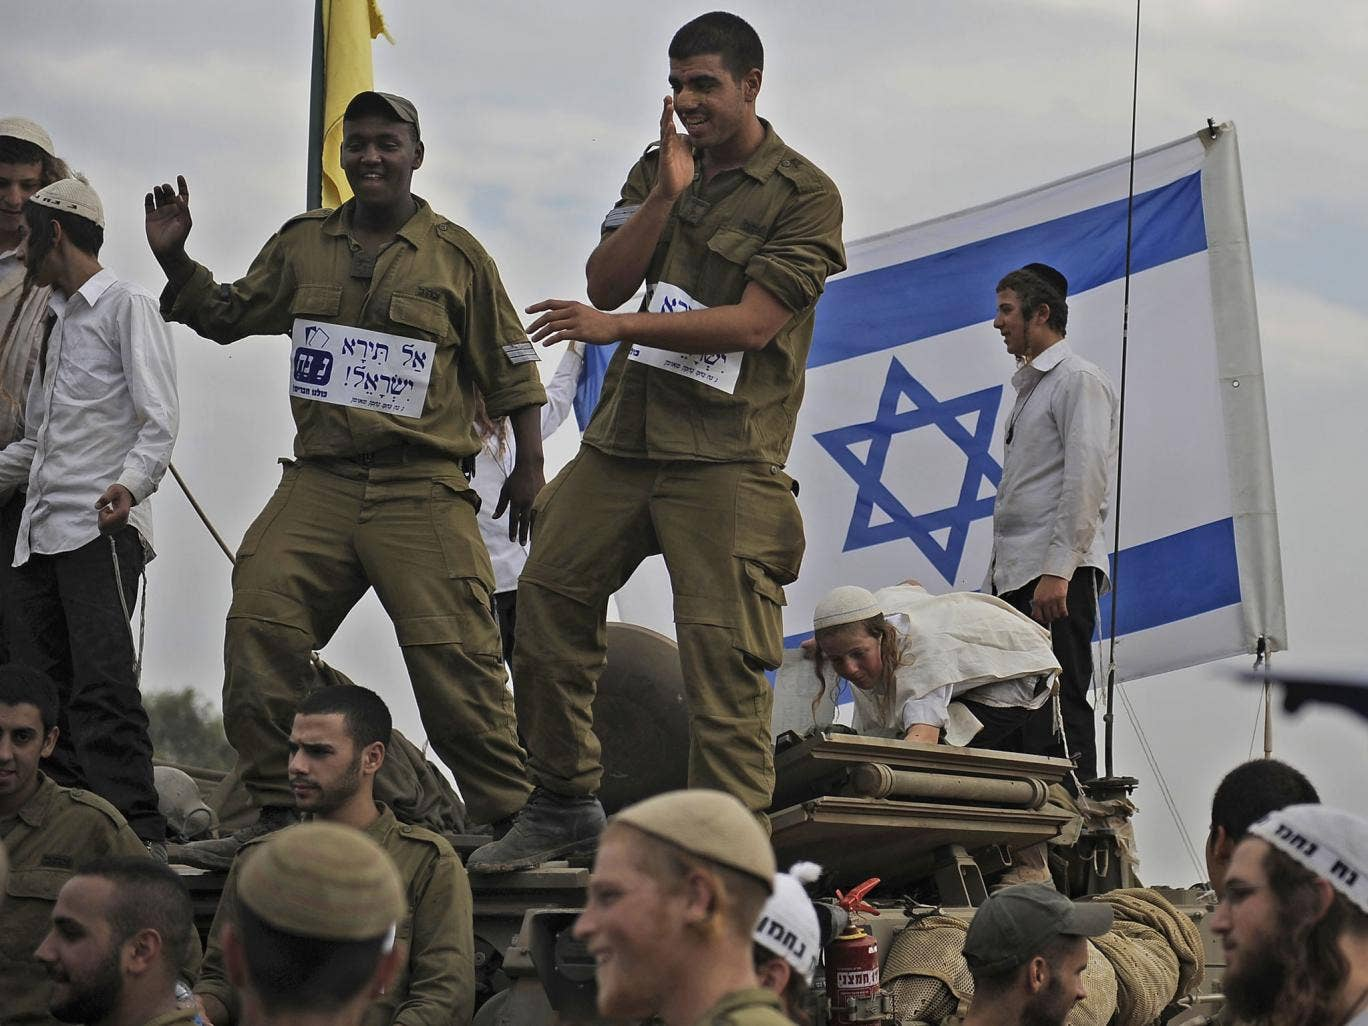 Israeli soldiers in cheerful mood before leaving a deployment area near the Gaza Strip